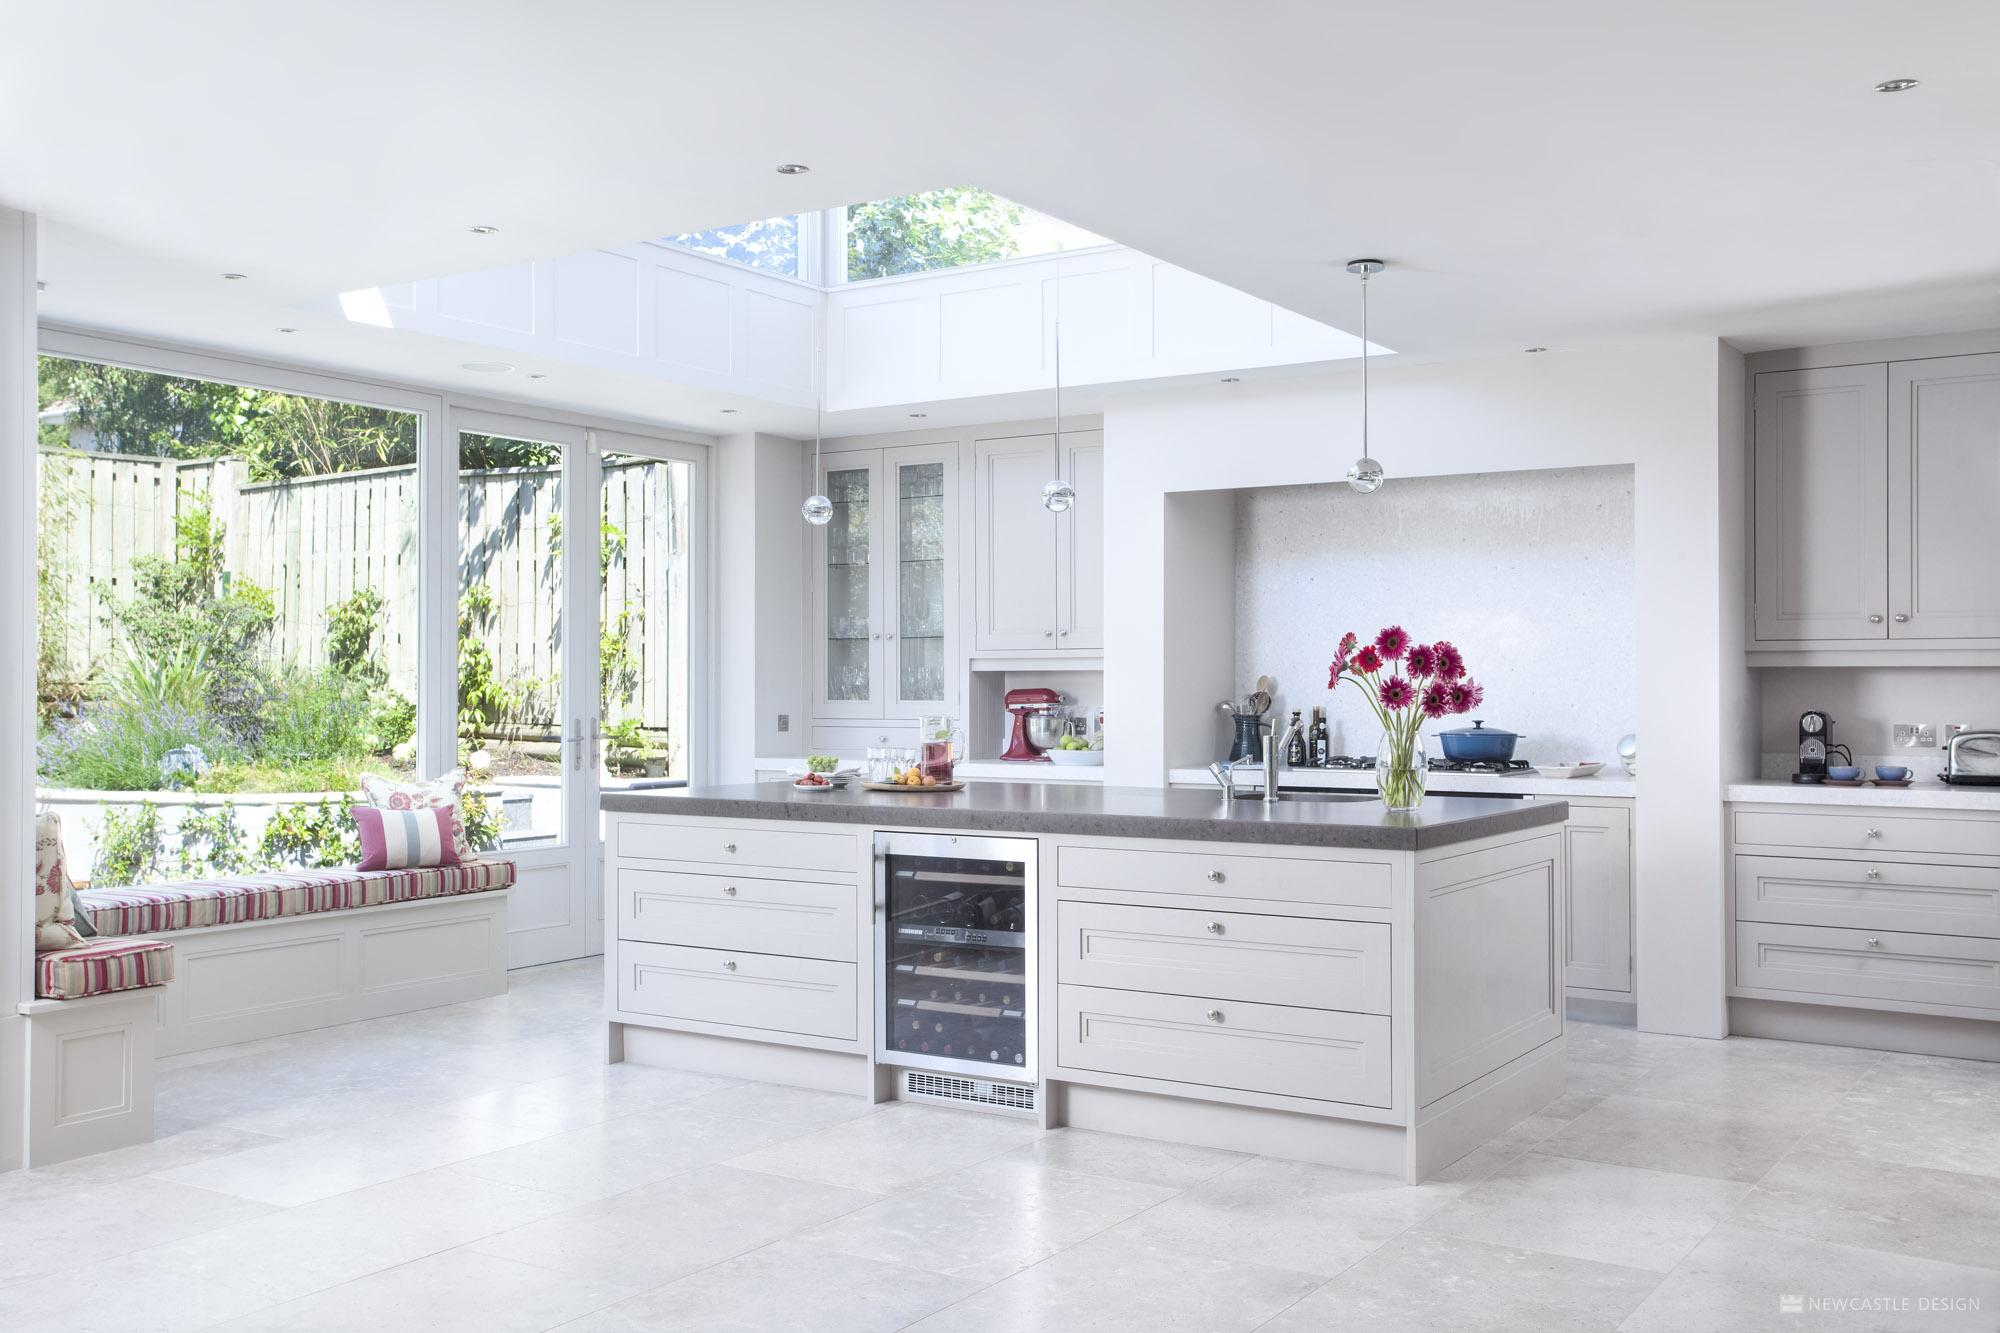 Modern Kitchen Design Dublin Newcastle Design Ireland Kitchen Company Dublin